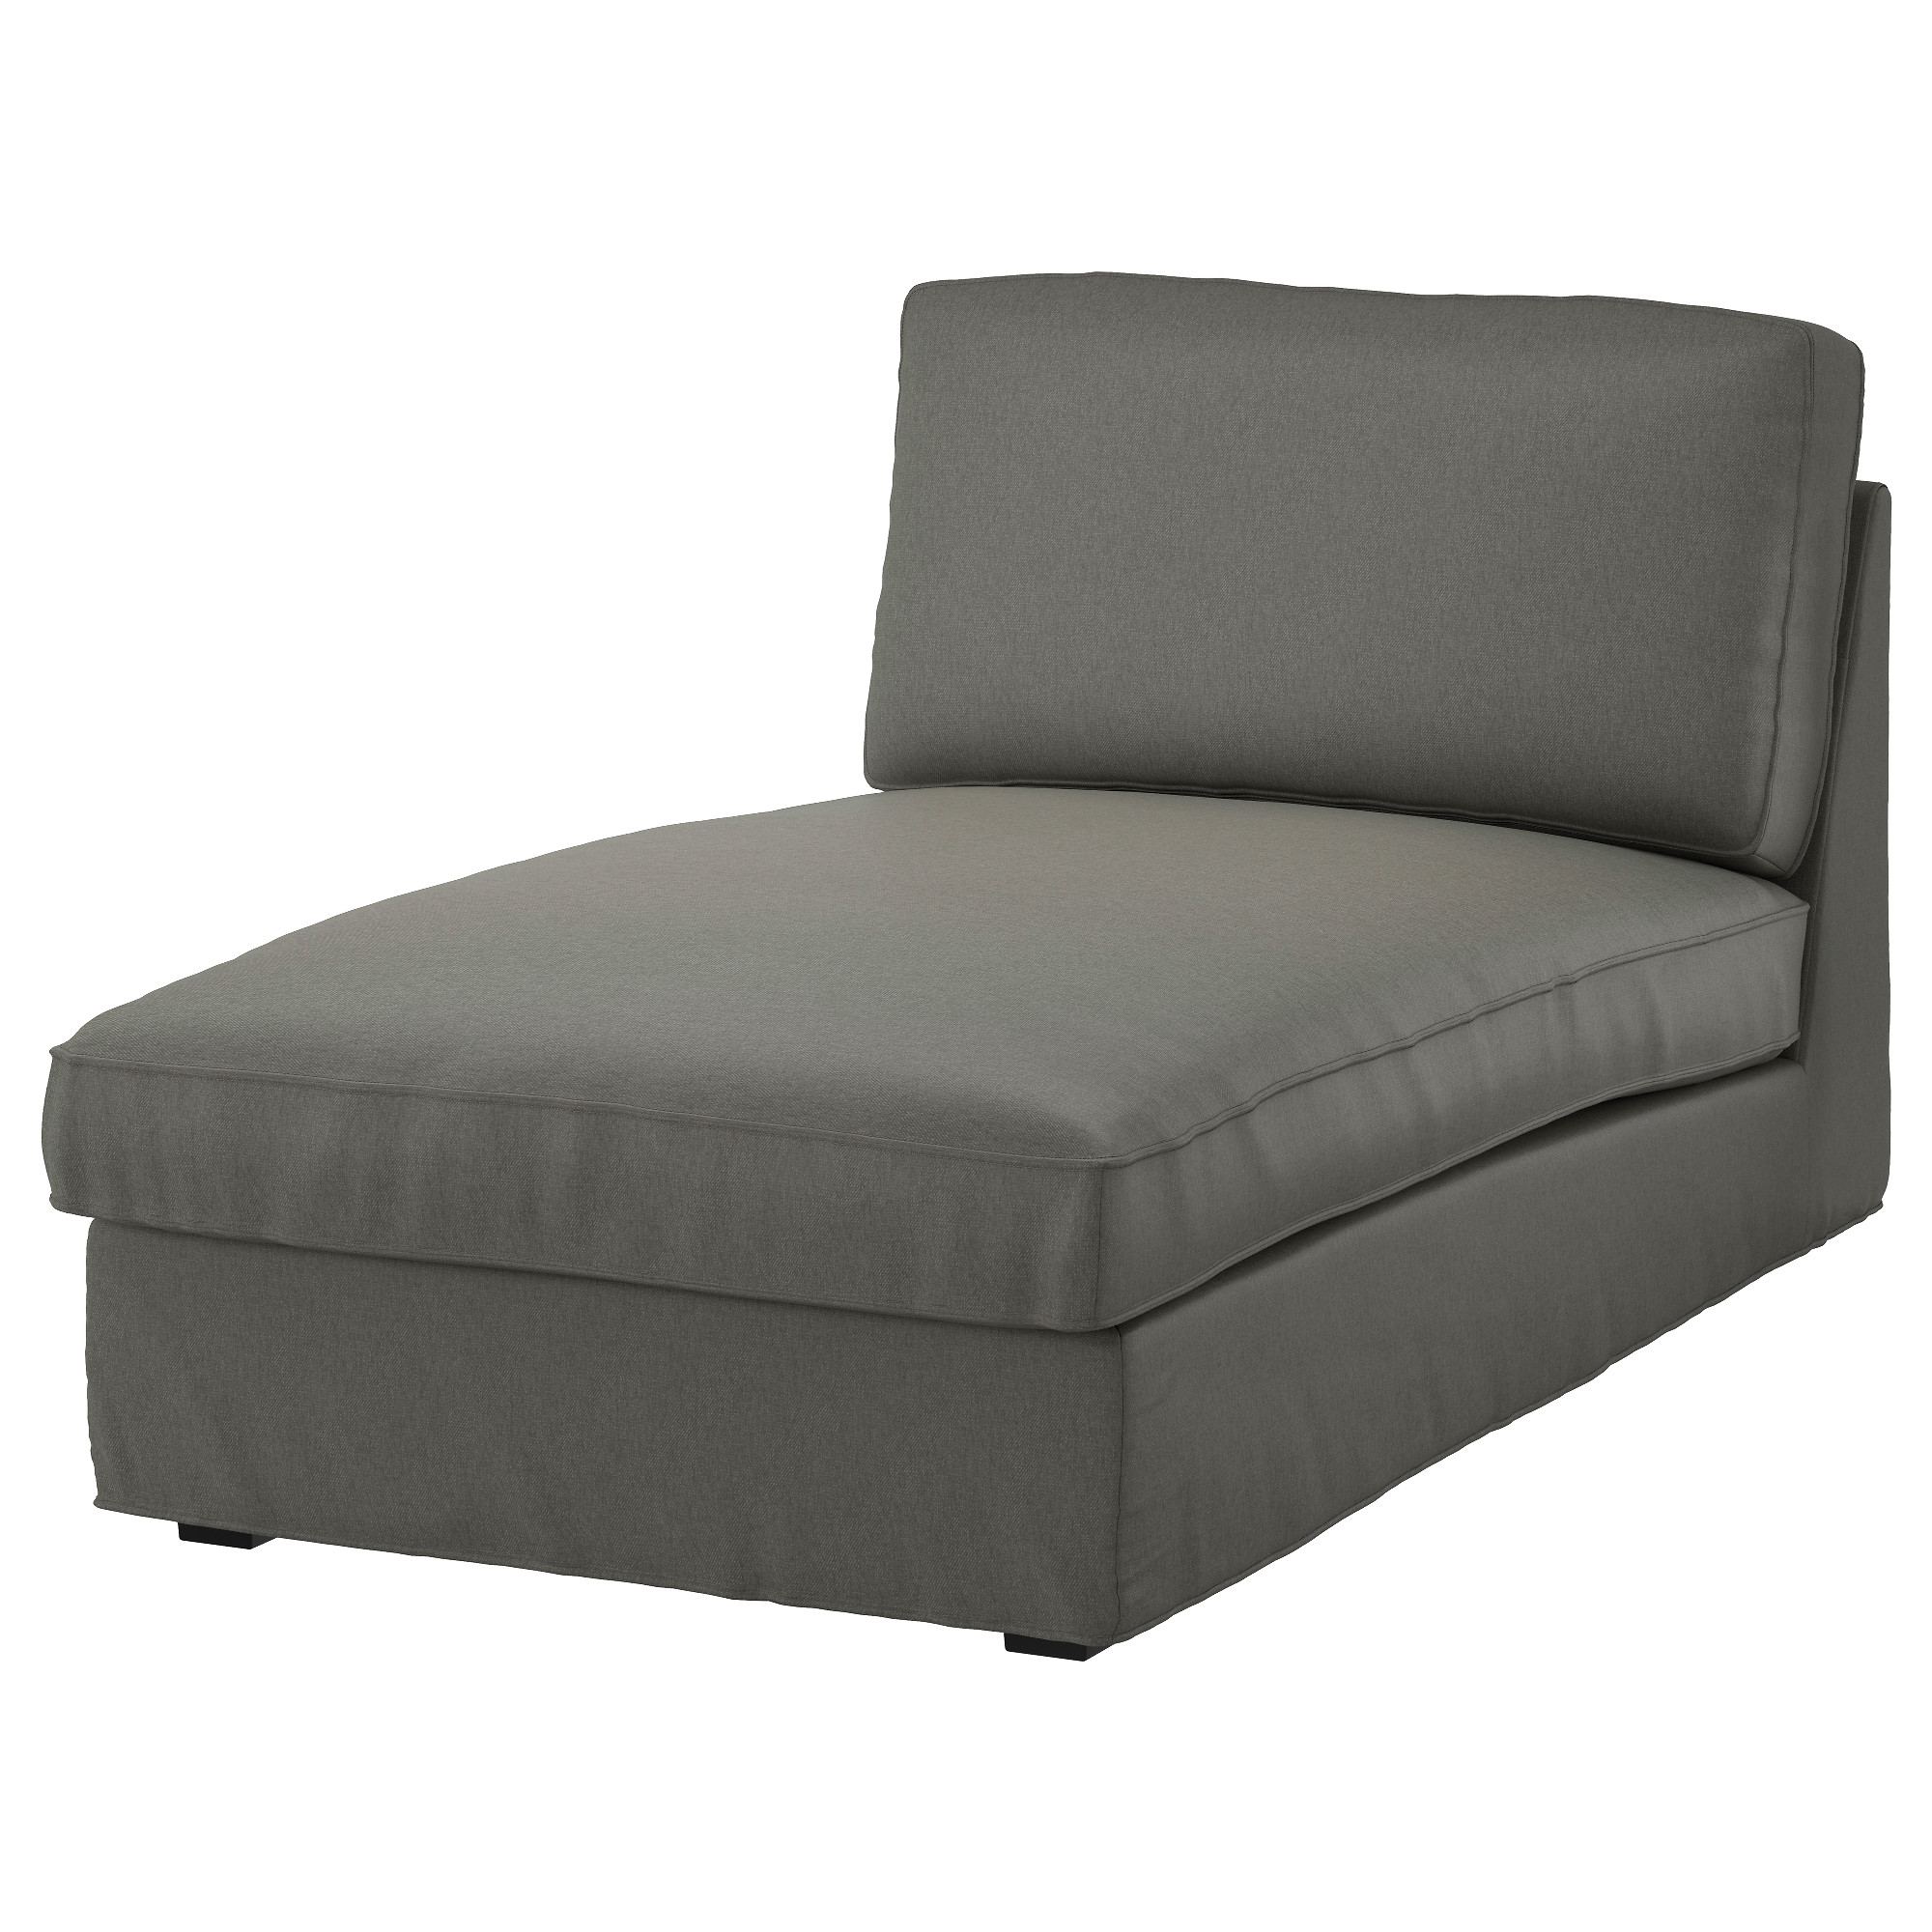 sc 1 st  Ikea : chaise longue plural - Sectionals, Sofas & Couches